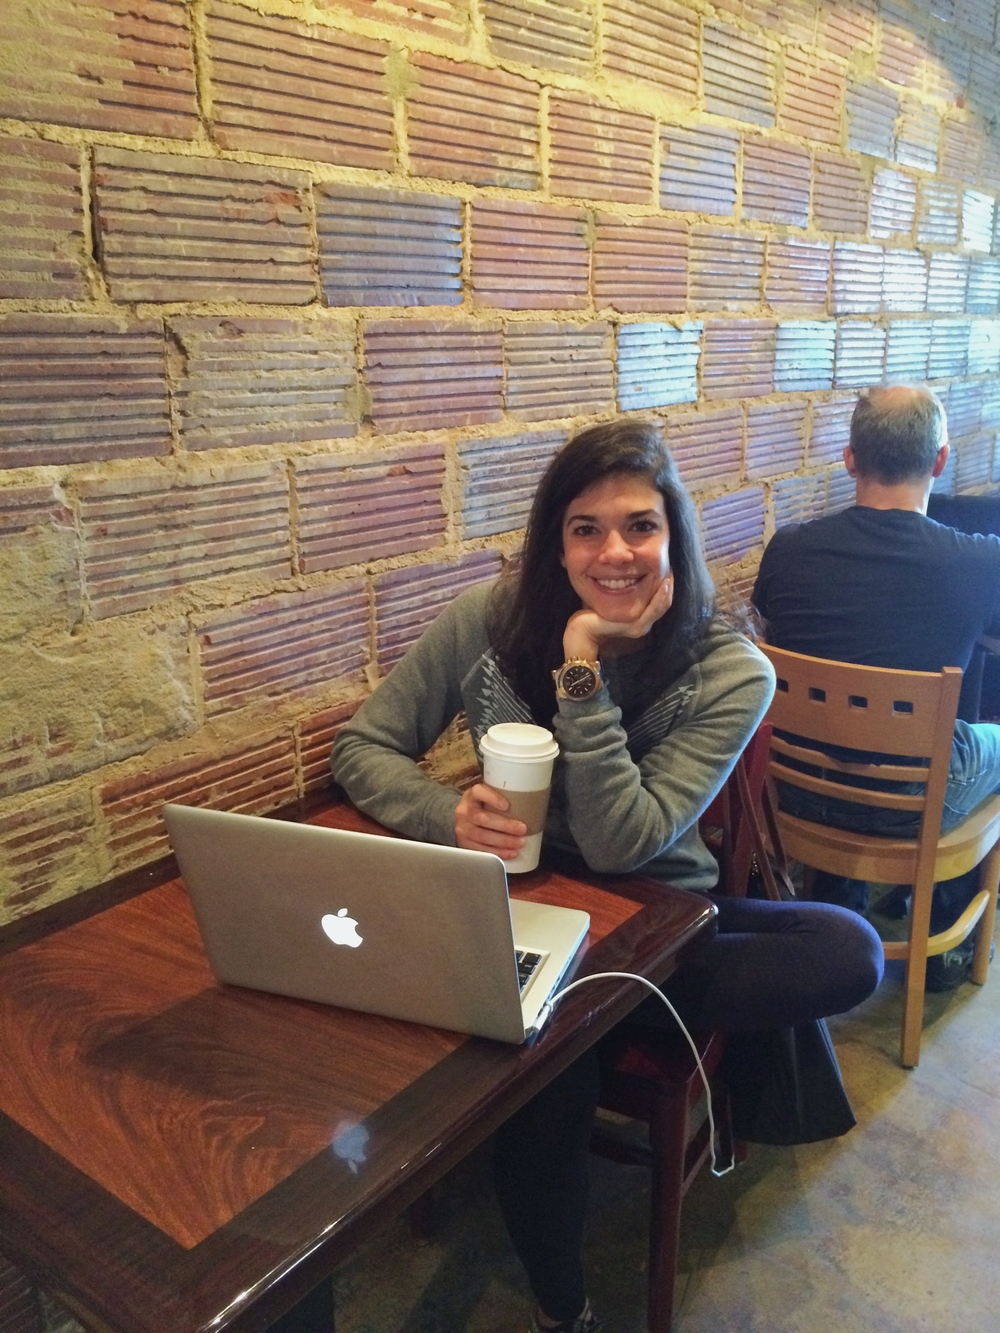 Lauren-Schwaiger-Blog-Central-Coffee-CLT.jpg